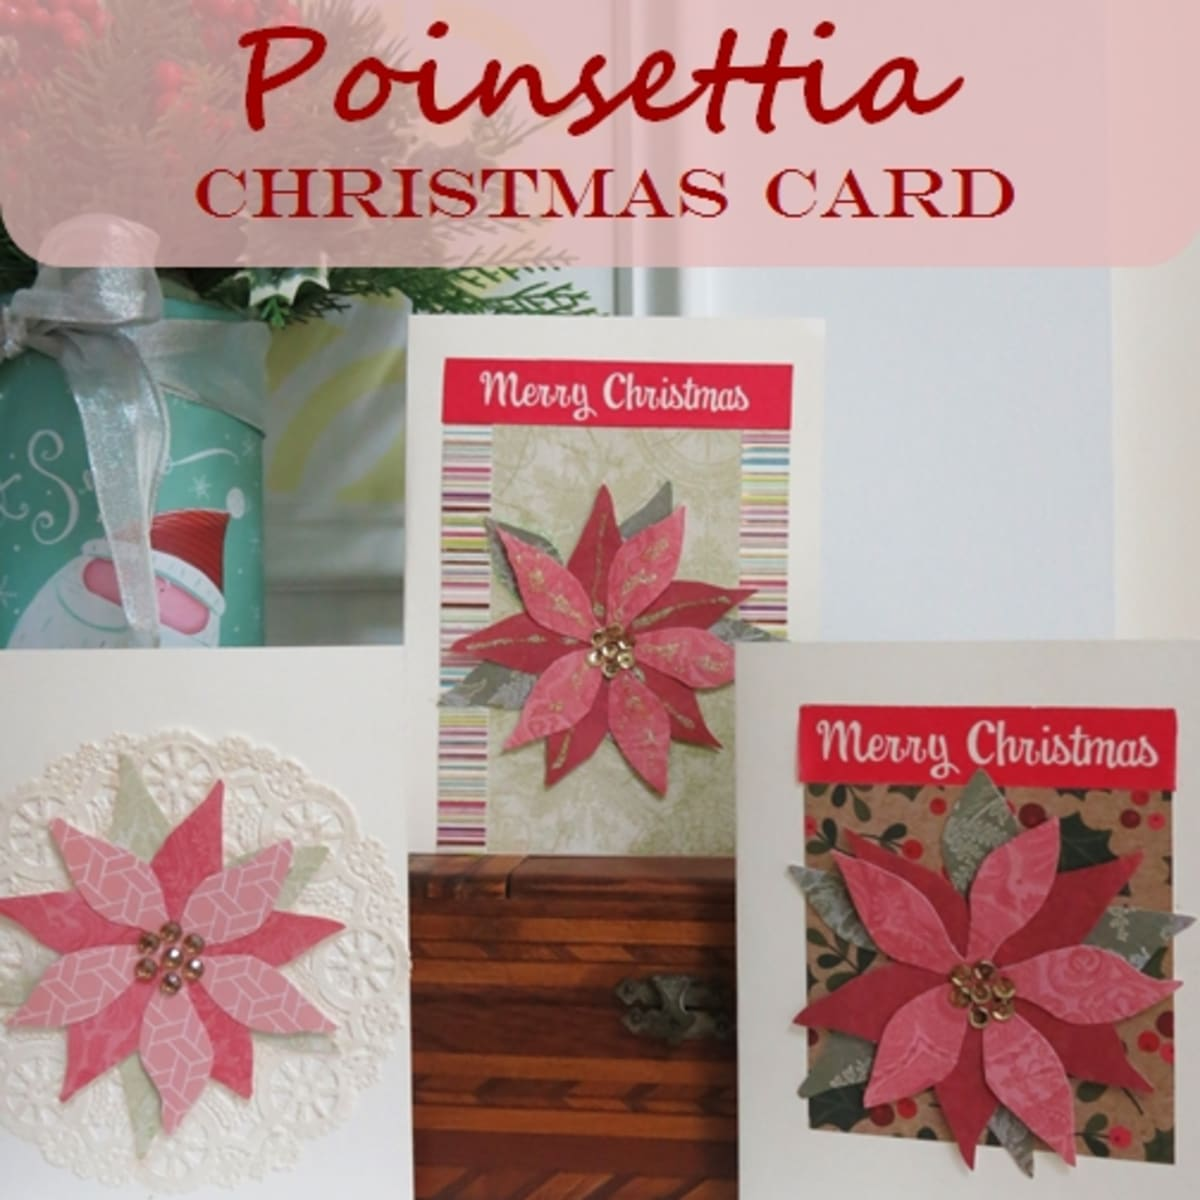 How To Make A Poinsettia Christmas Card Without Any Special Equipment Feltmagnet Crafts